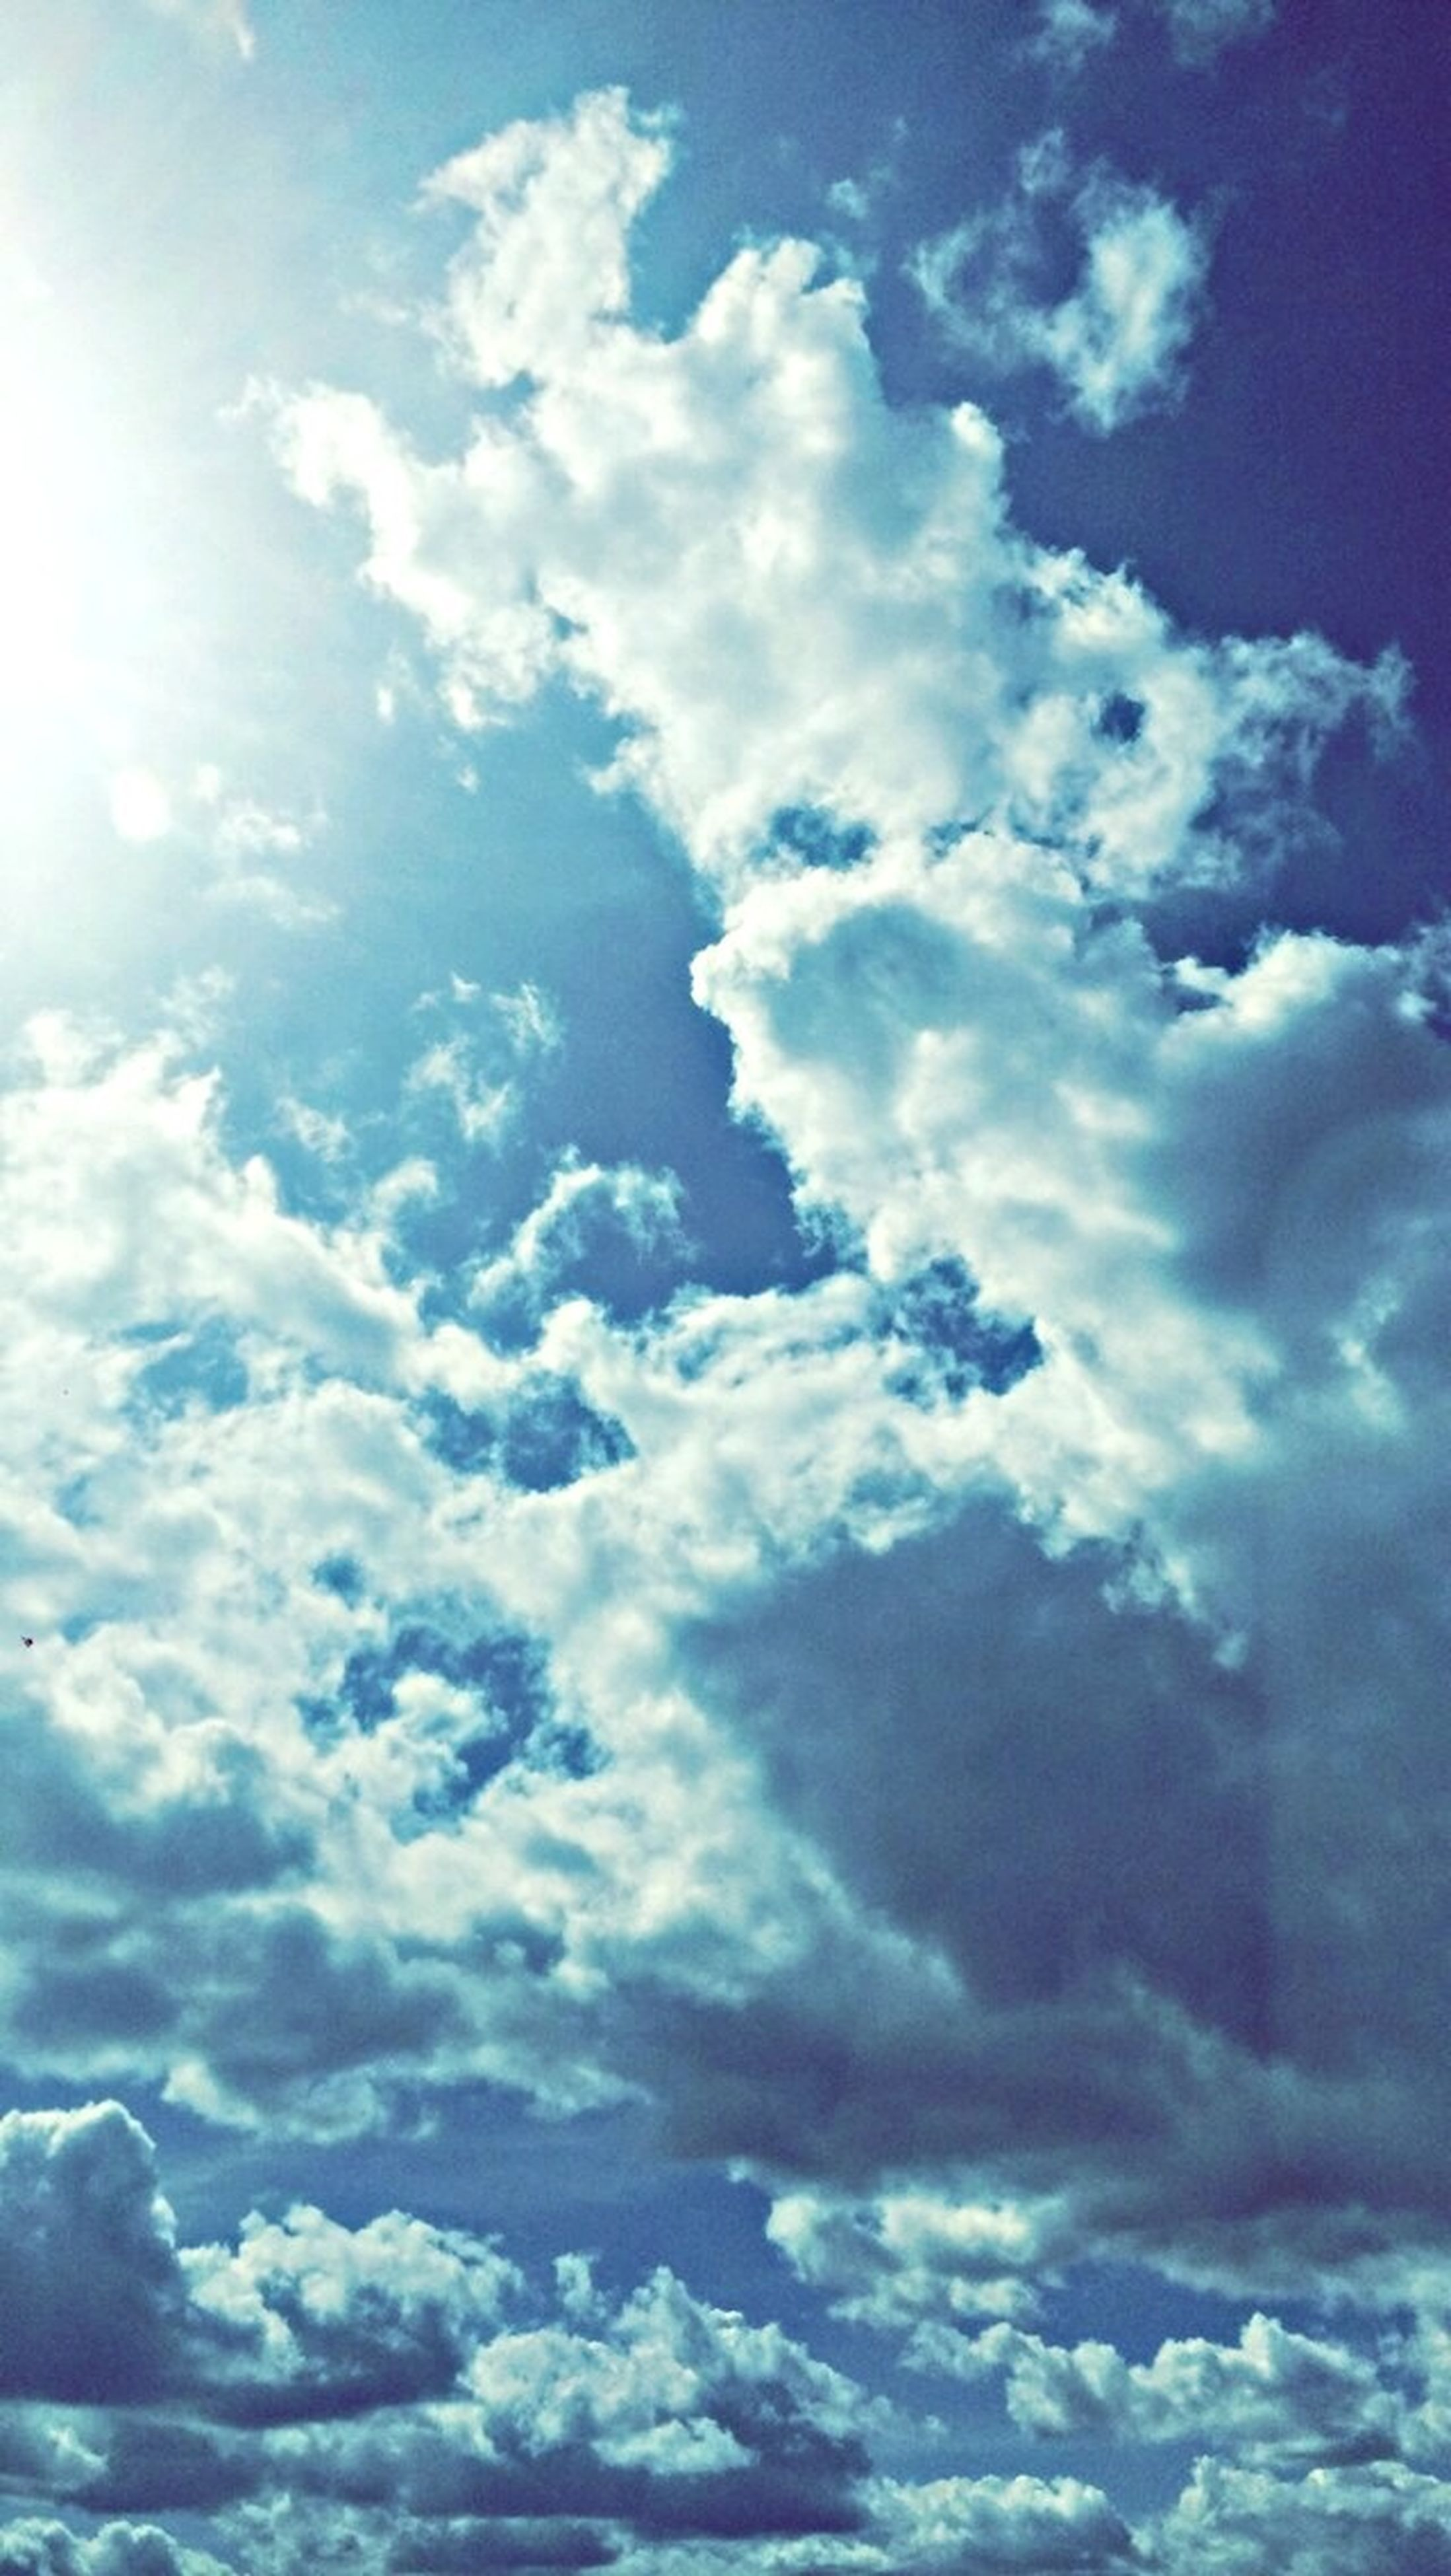 sky, beauty in nature, scenics, tranquility, cloud - sky, tranquil scene, sky only, cloudscape, nature, cloudy, blue, cloud, idyllic, low angle view, backgrounds, sunlight, white color, majestic, day, outdoors